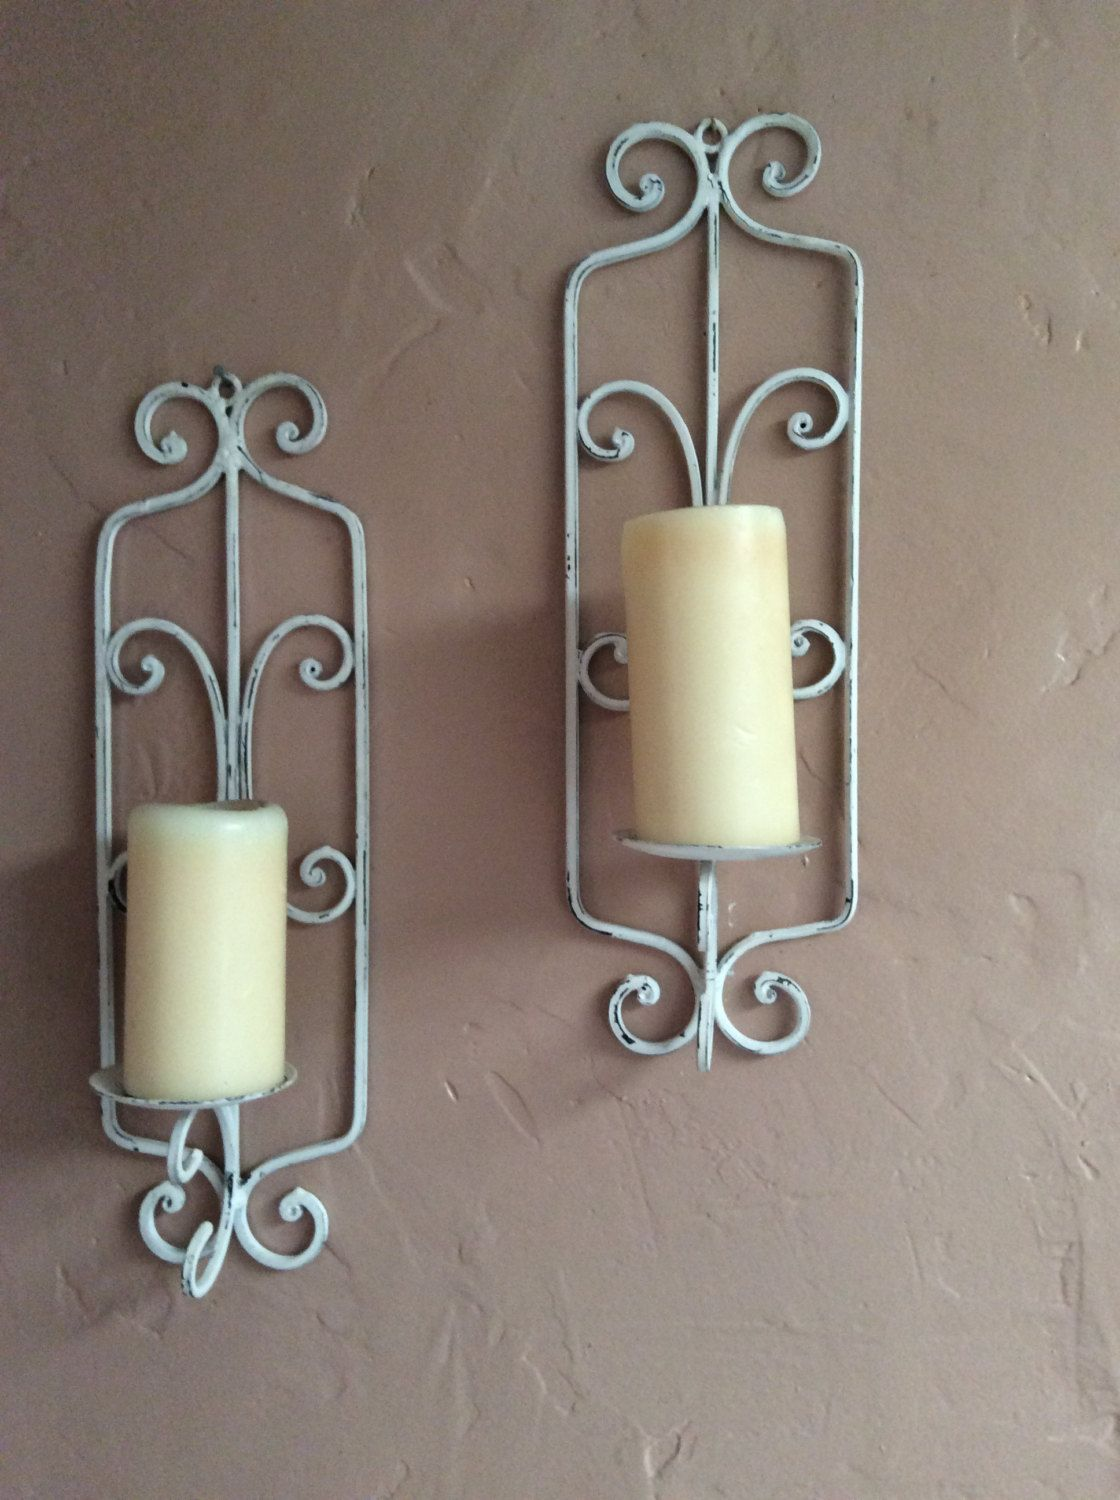 wall candle french of beautiful sconces shelves decor sconce holders shelf iron cast corner high antique decorative